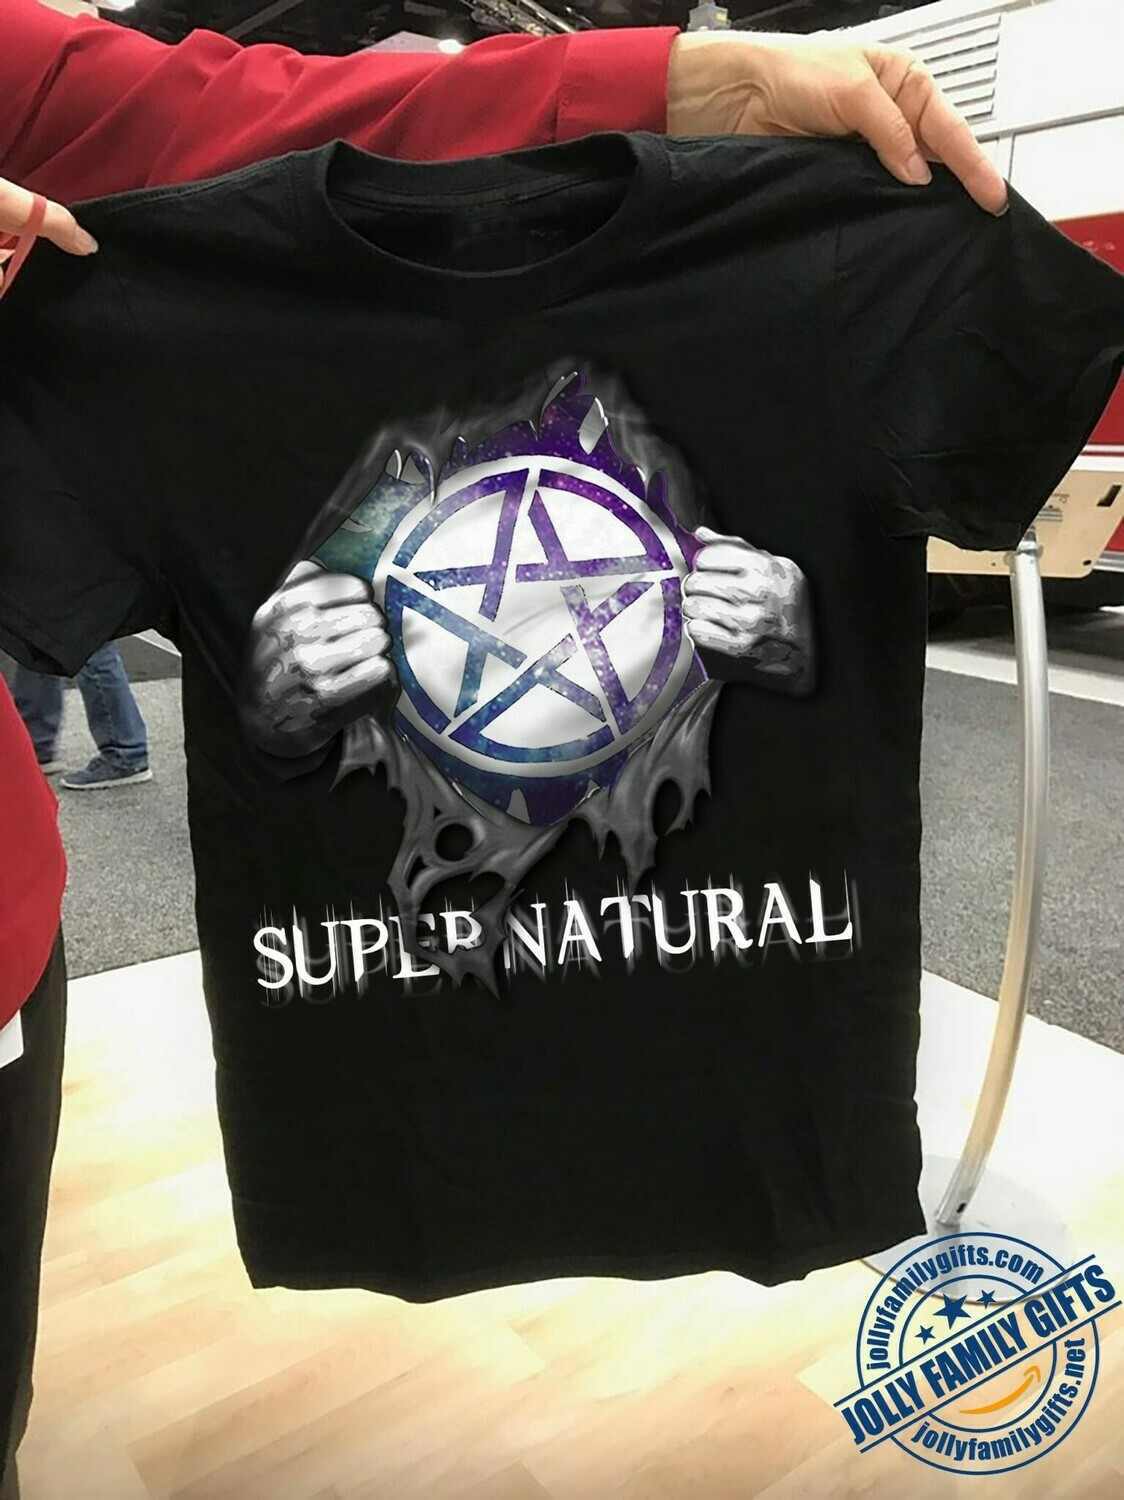 Supernatural Sam Dean Winchester 15 Years Just Funky Super Natural Join The Hunt  Unisex T-Shirt Hoodie Sweatshirt Sweater Plus Size for Ladies Women Men Kids Youth Gifts Tee Jolly Family Gifts